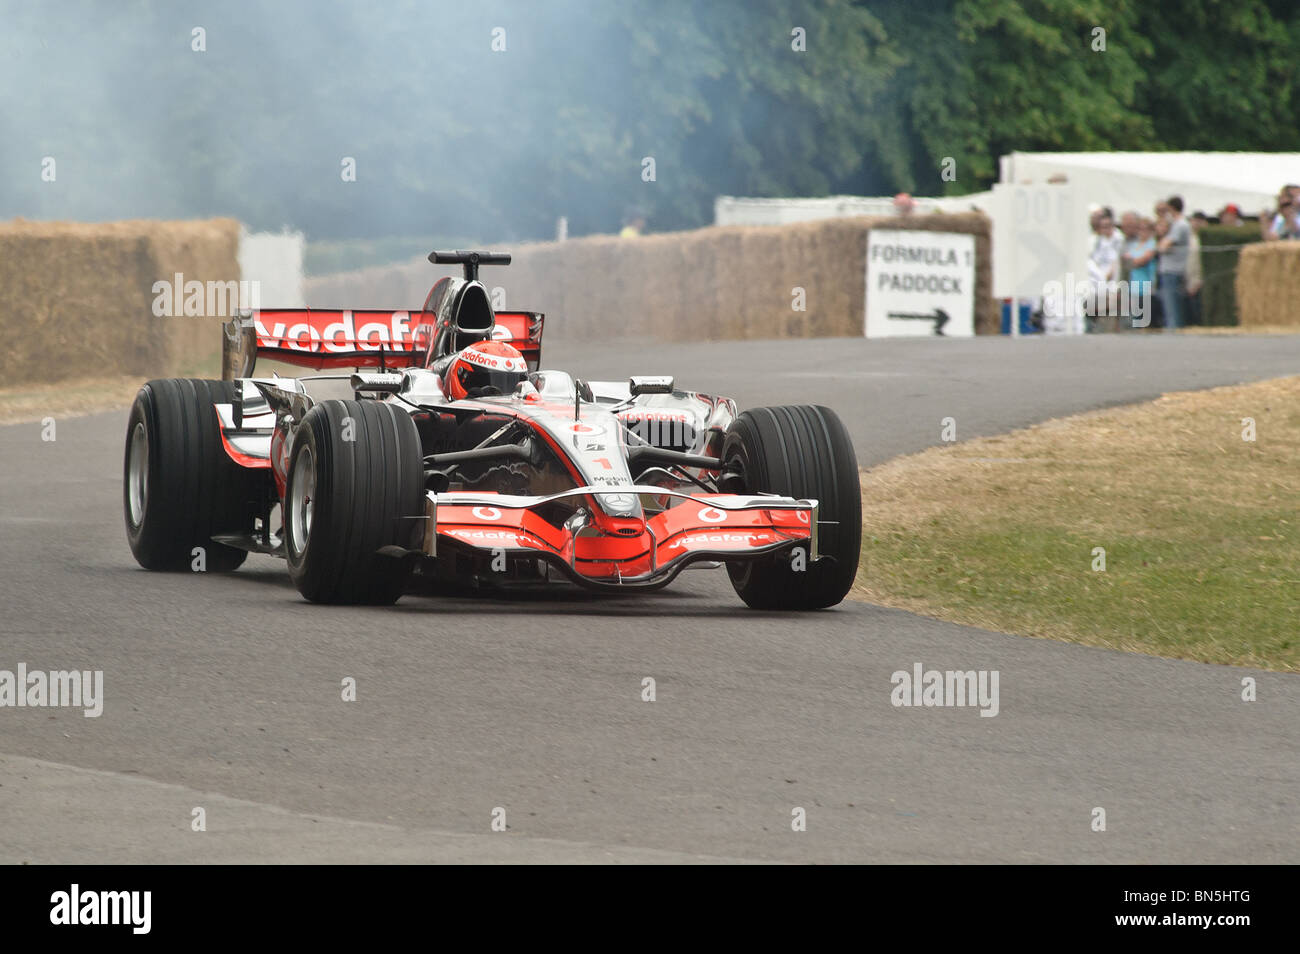 A Maclaren Formula 1 Car climbs the hill at the Goodwood Festival of Speed 2010 - Stock Image